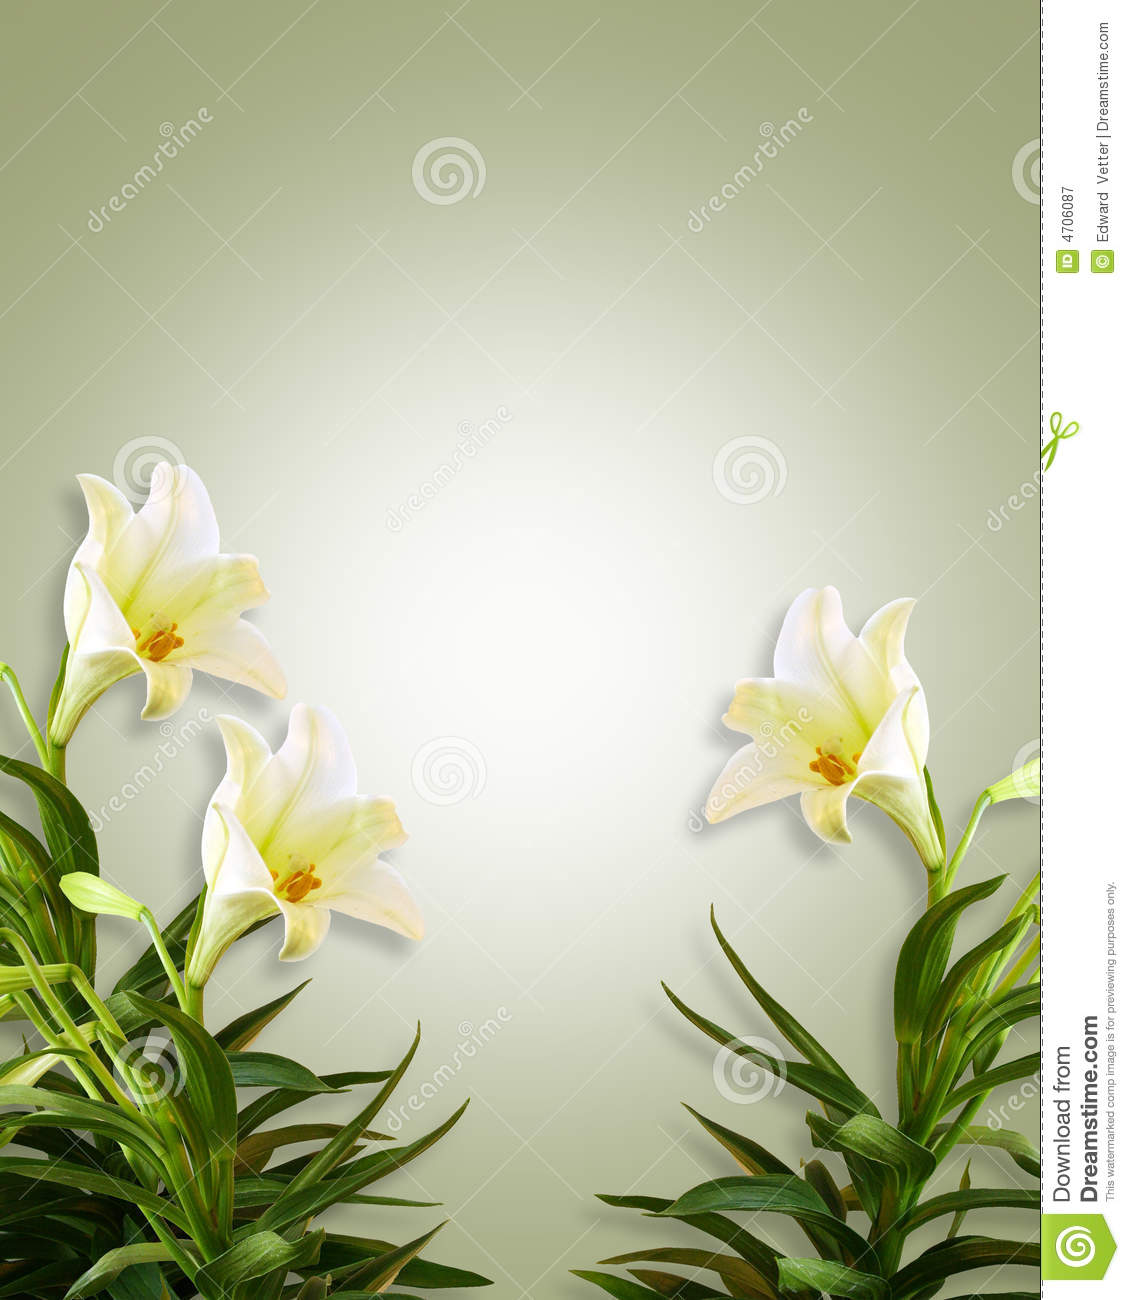 White Lilies Floral Easter Background Royalty Free Stock Photography Image: 4706087